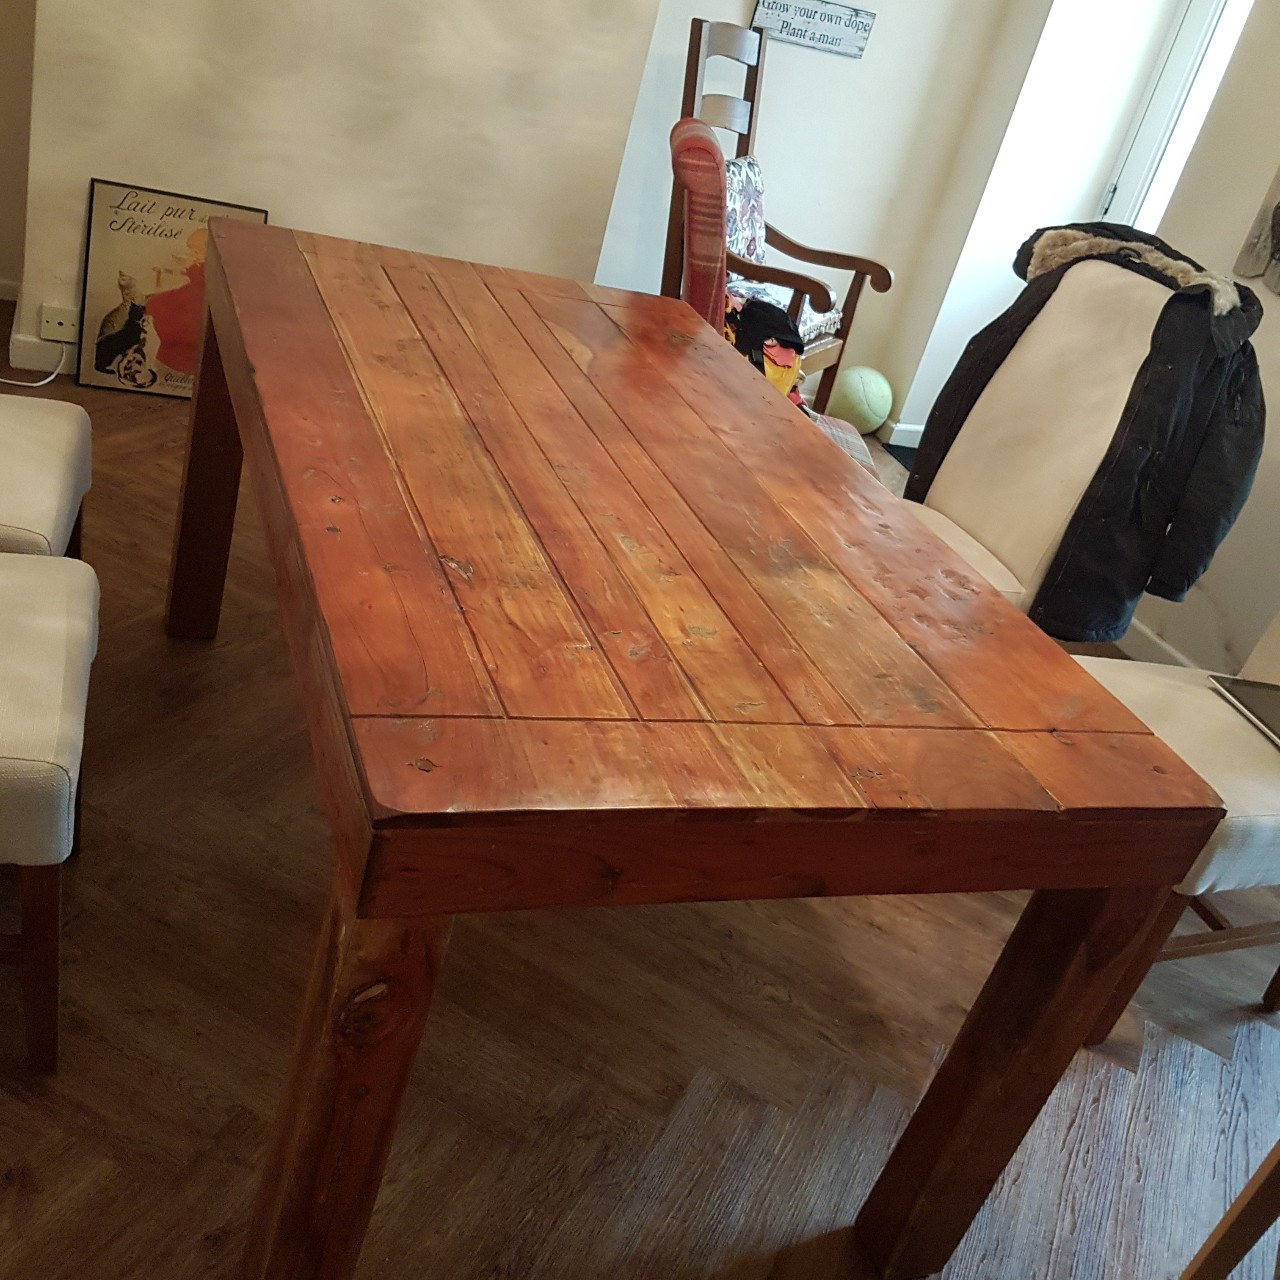 Rosewood dining table 5ft 5 long 3ft wide 2ft 8 - Depop